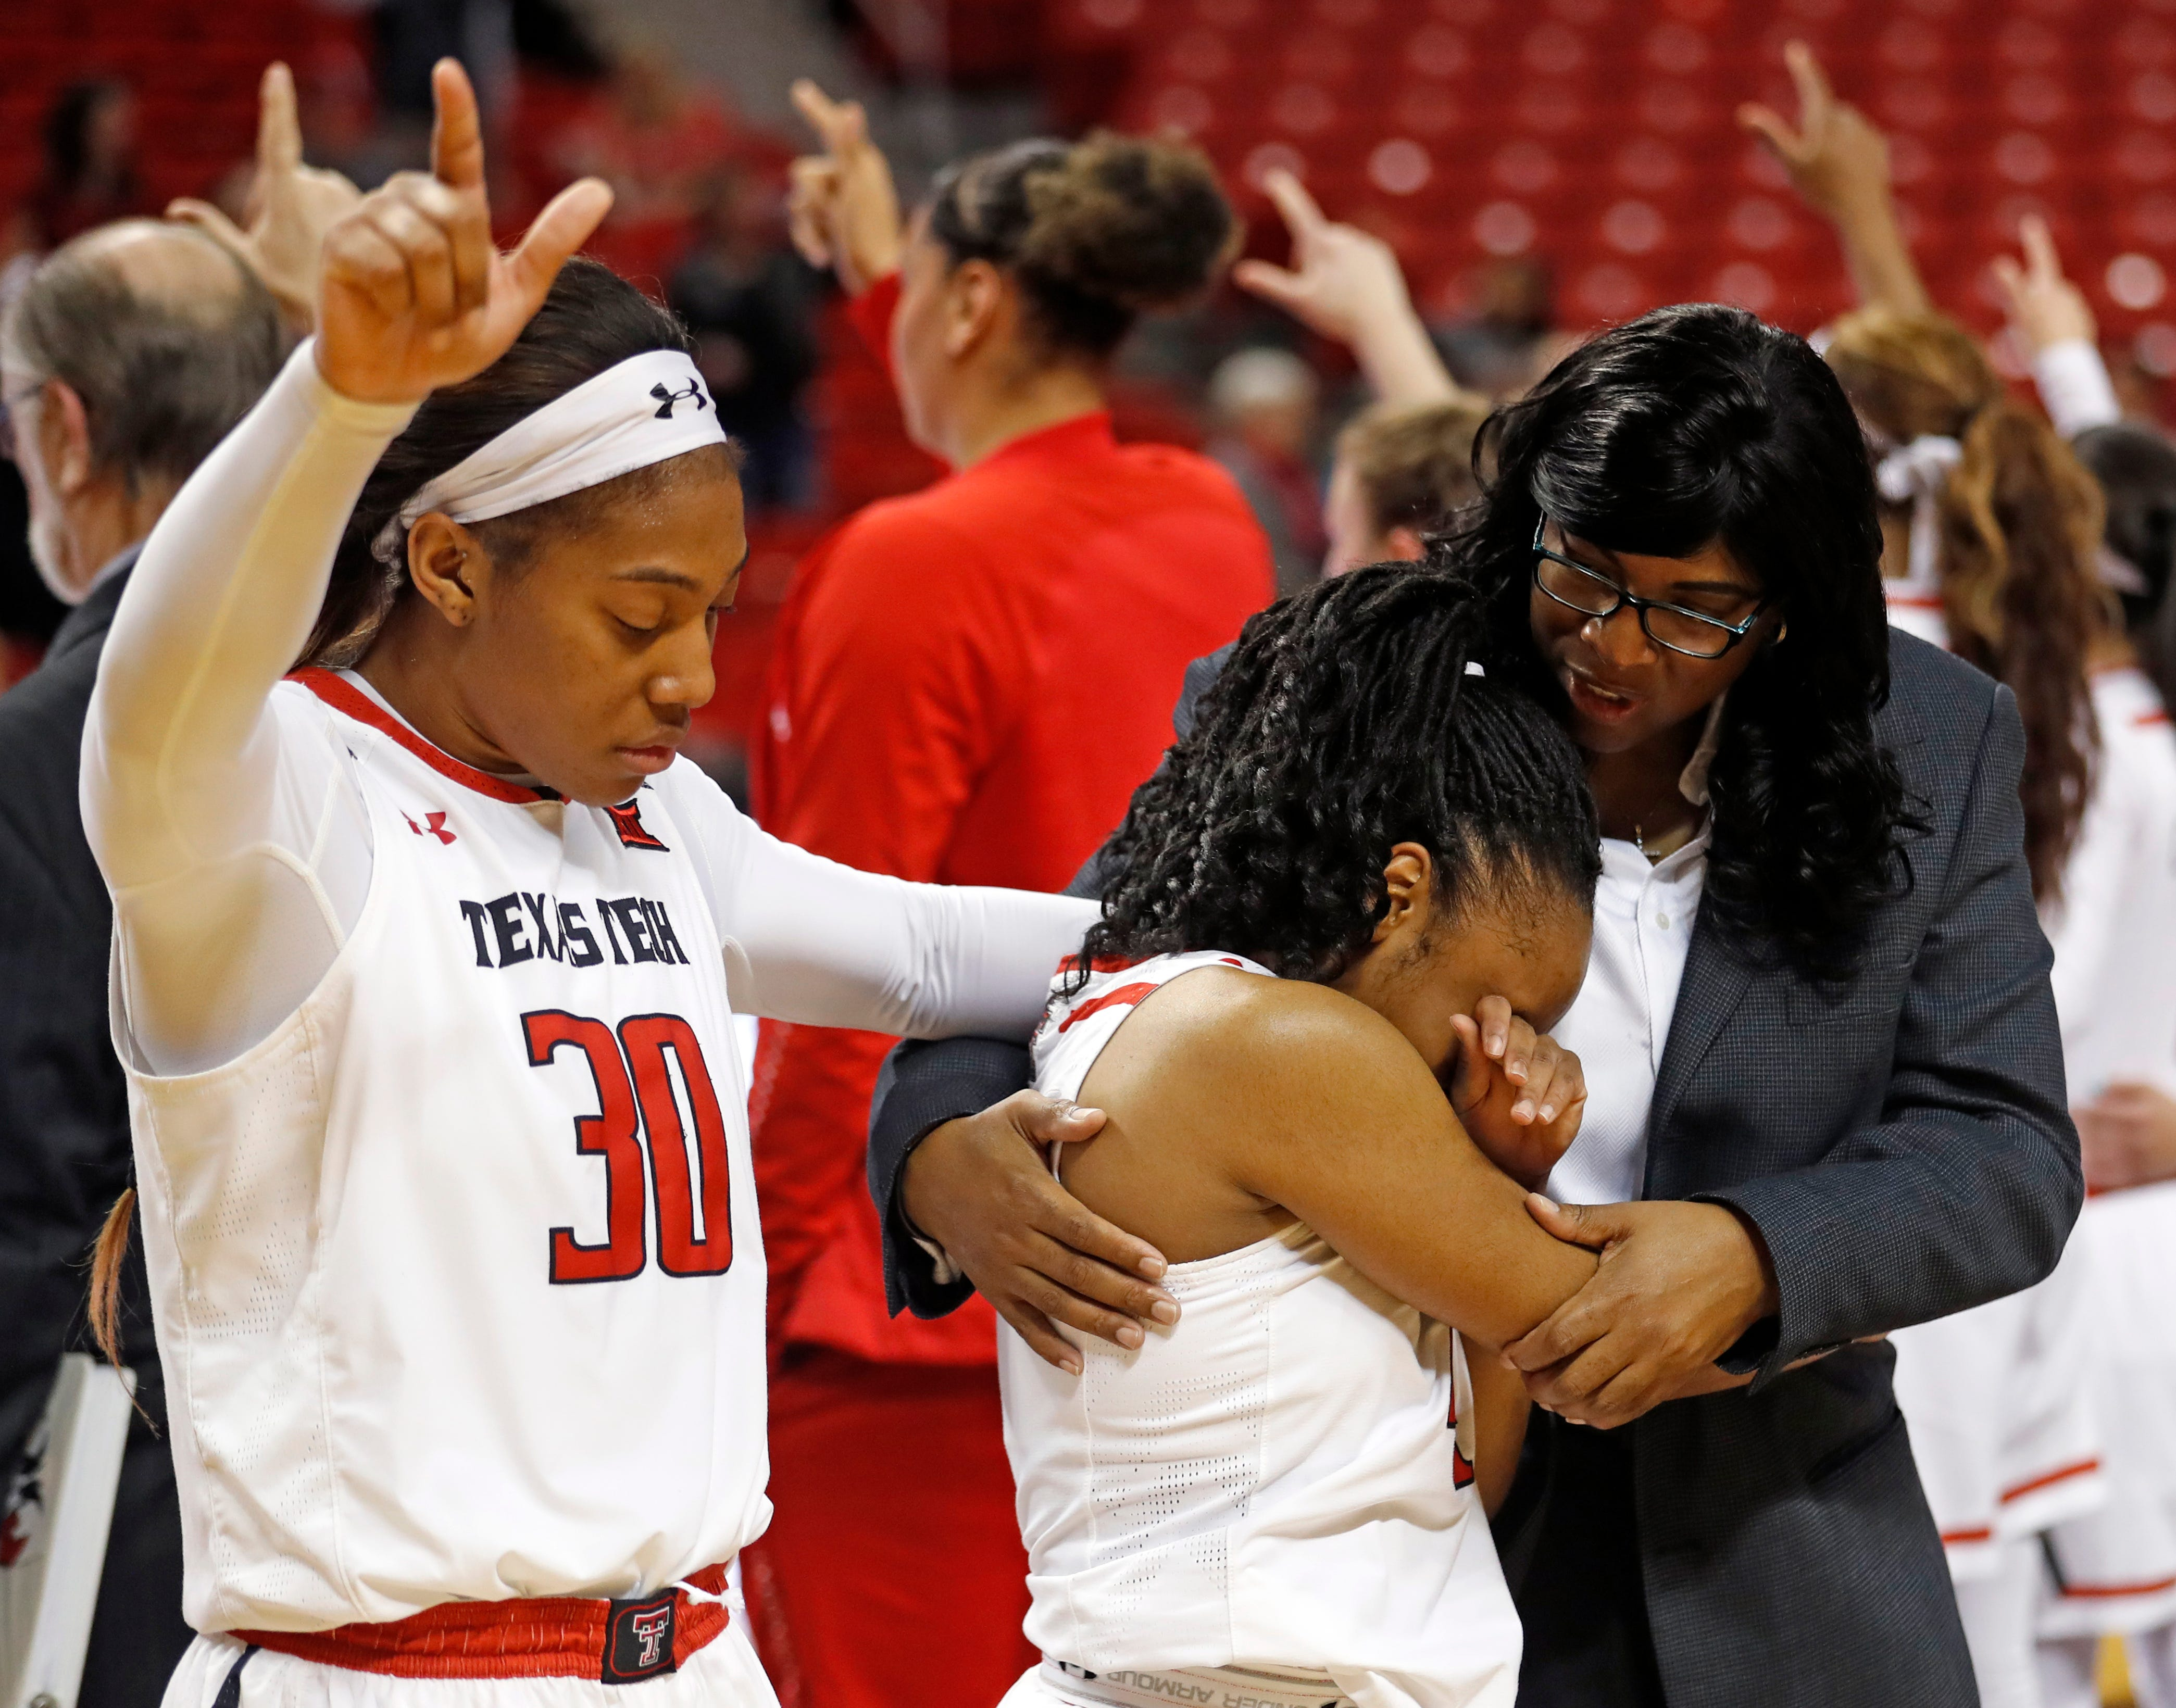 Texas Tech assistant coach Nikita Lowry Dawkins, right, holds Chrislyn Carr after she missed a potential game-winning shot after a game in February 2019.